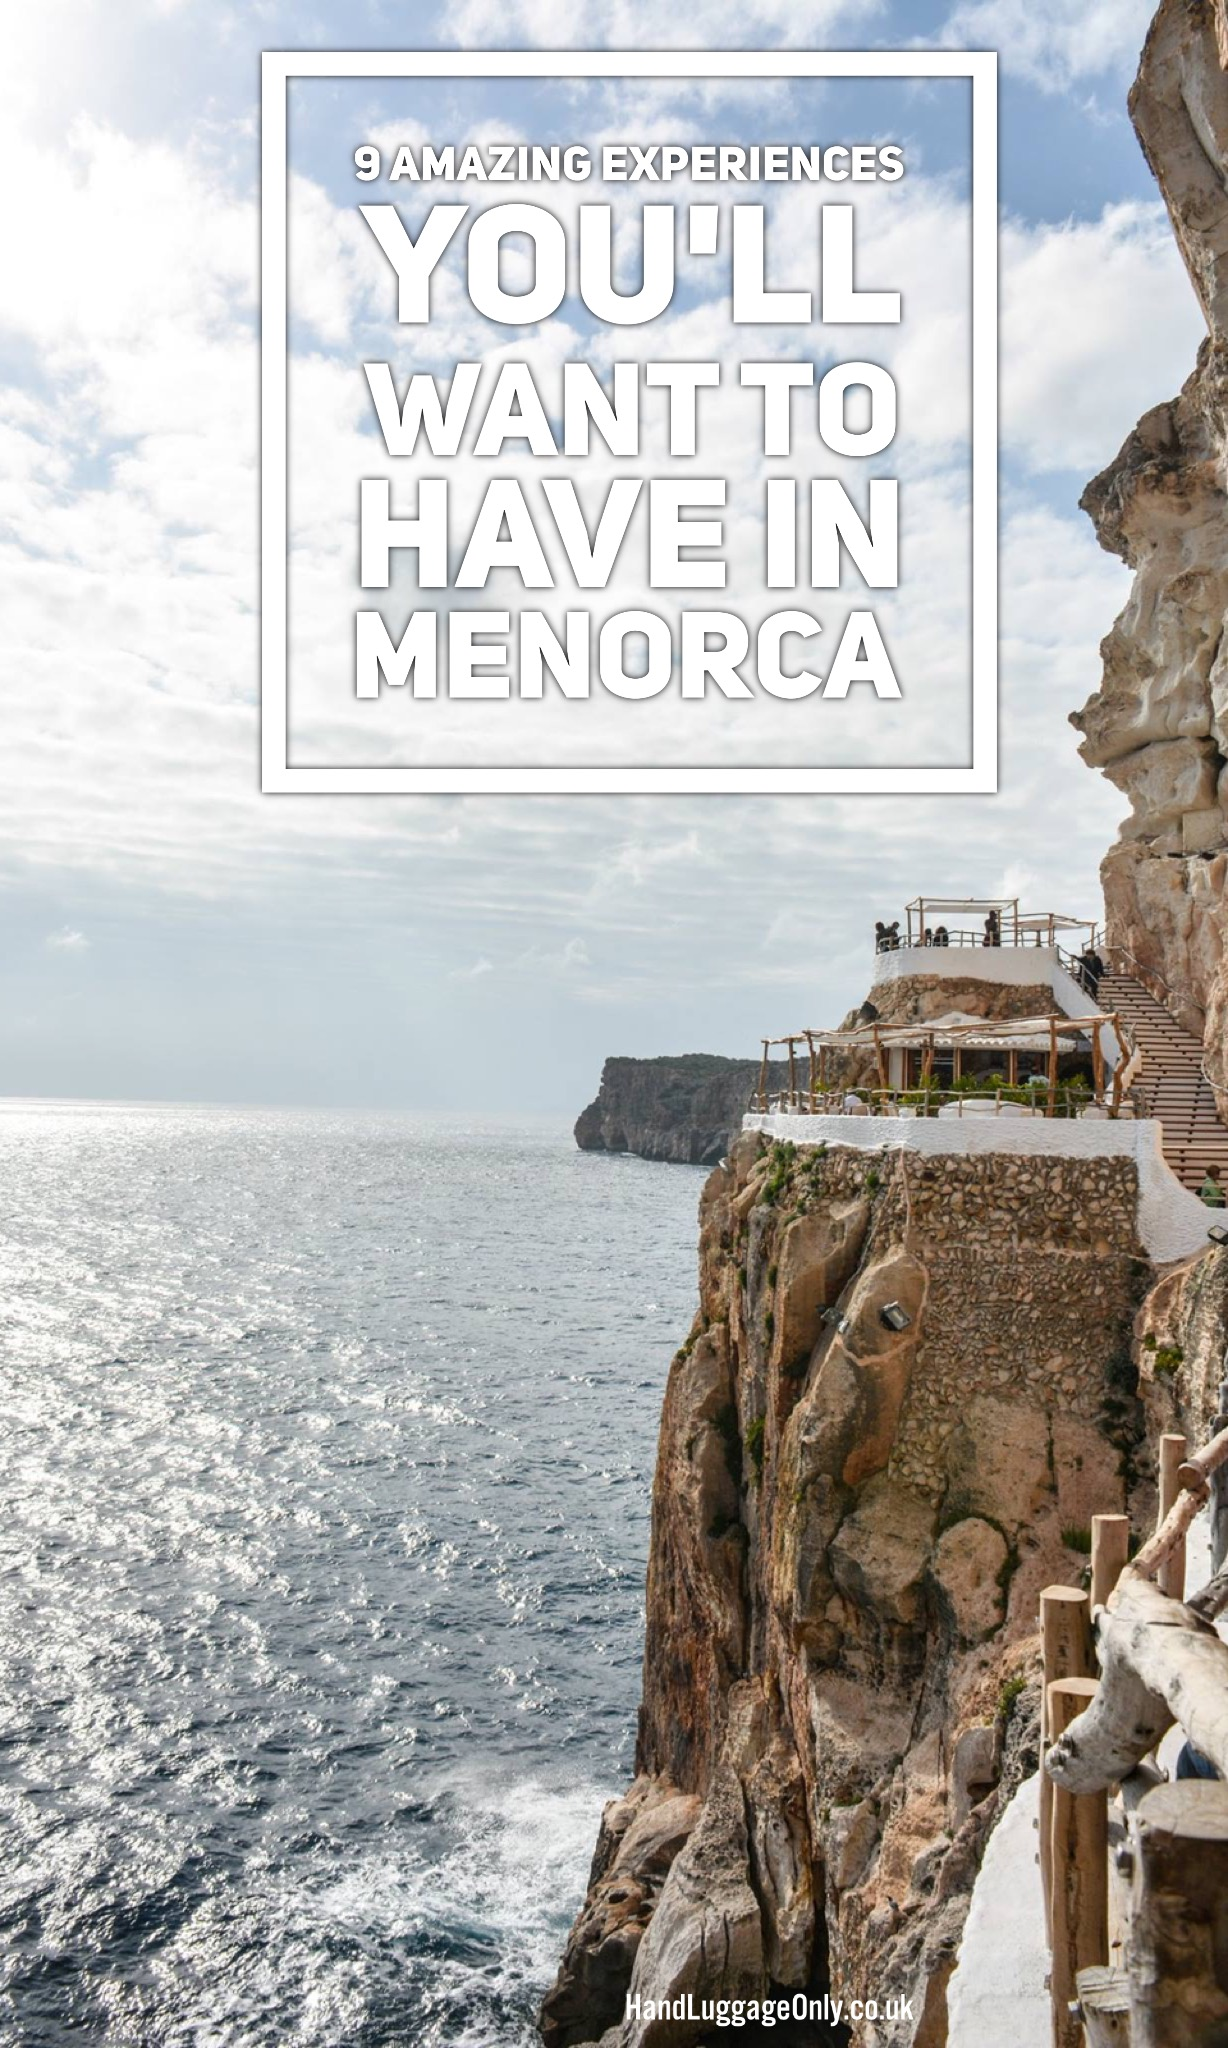 9 Experiences You Need To Have On The Island Of Menorca, Spain (1)